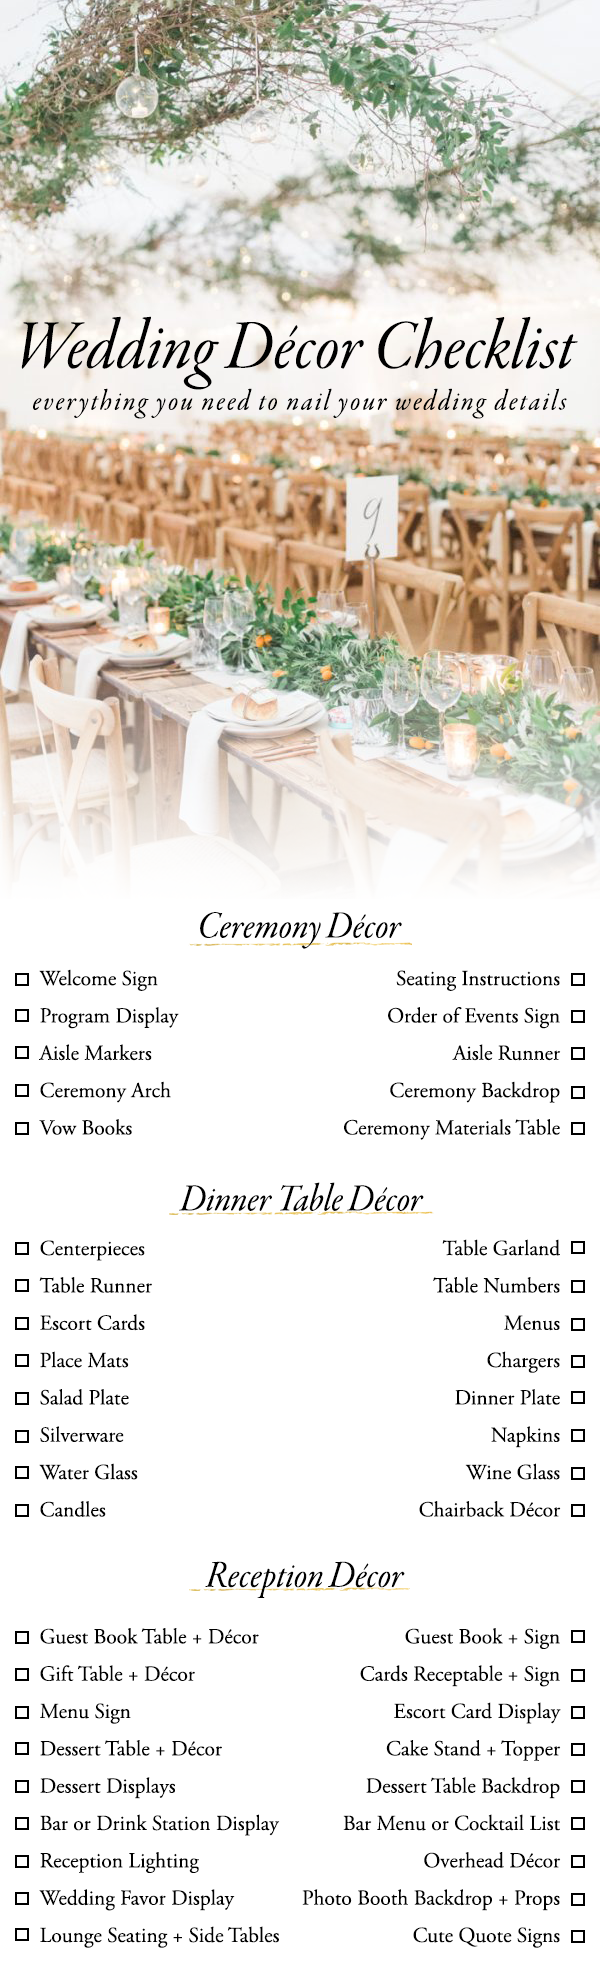 Looking For More Checklists To Prepare Your Day Our Wedding Planning Checklist Is Perfect You